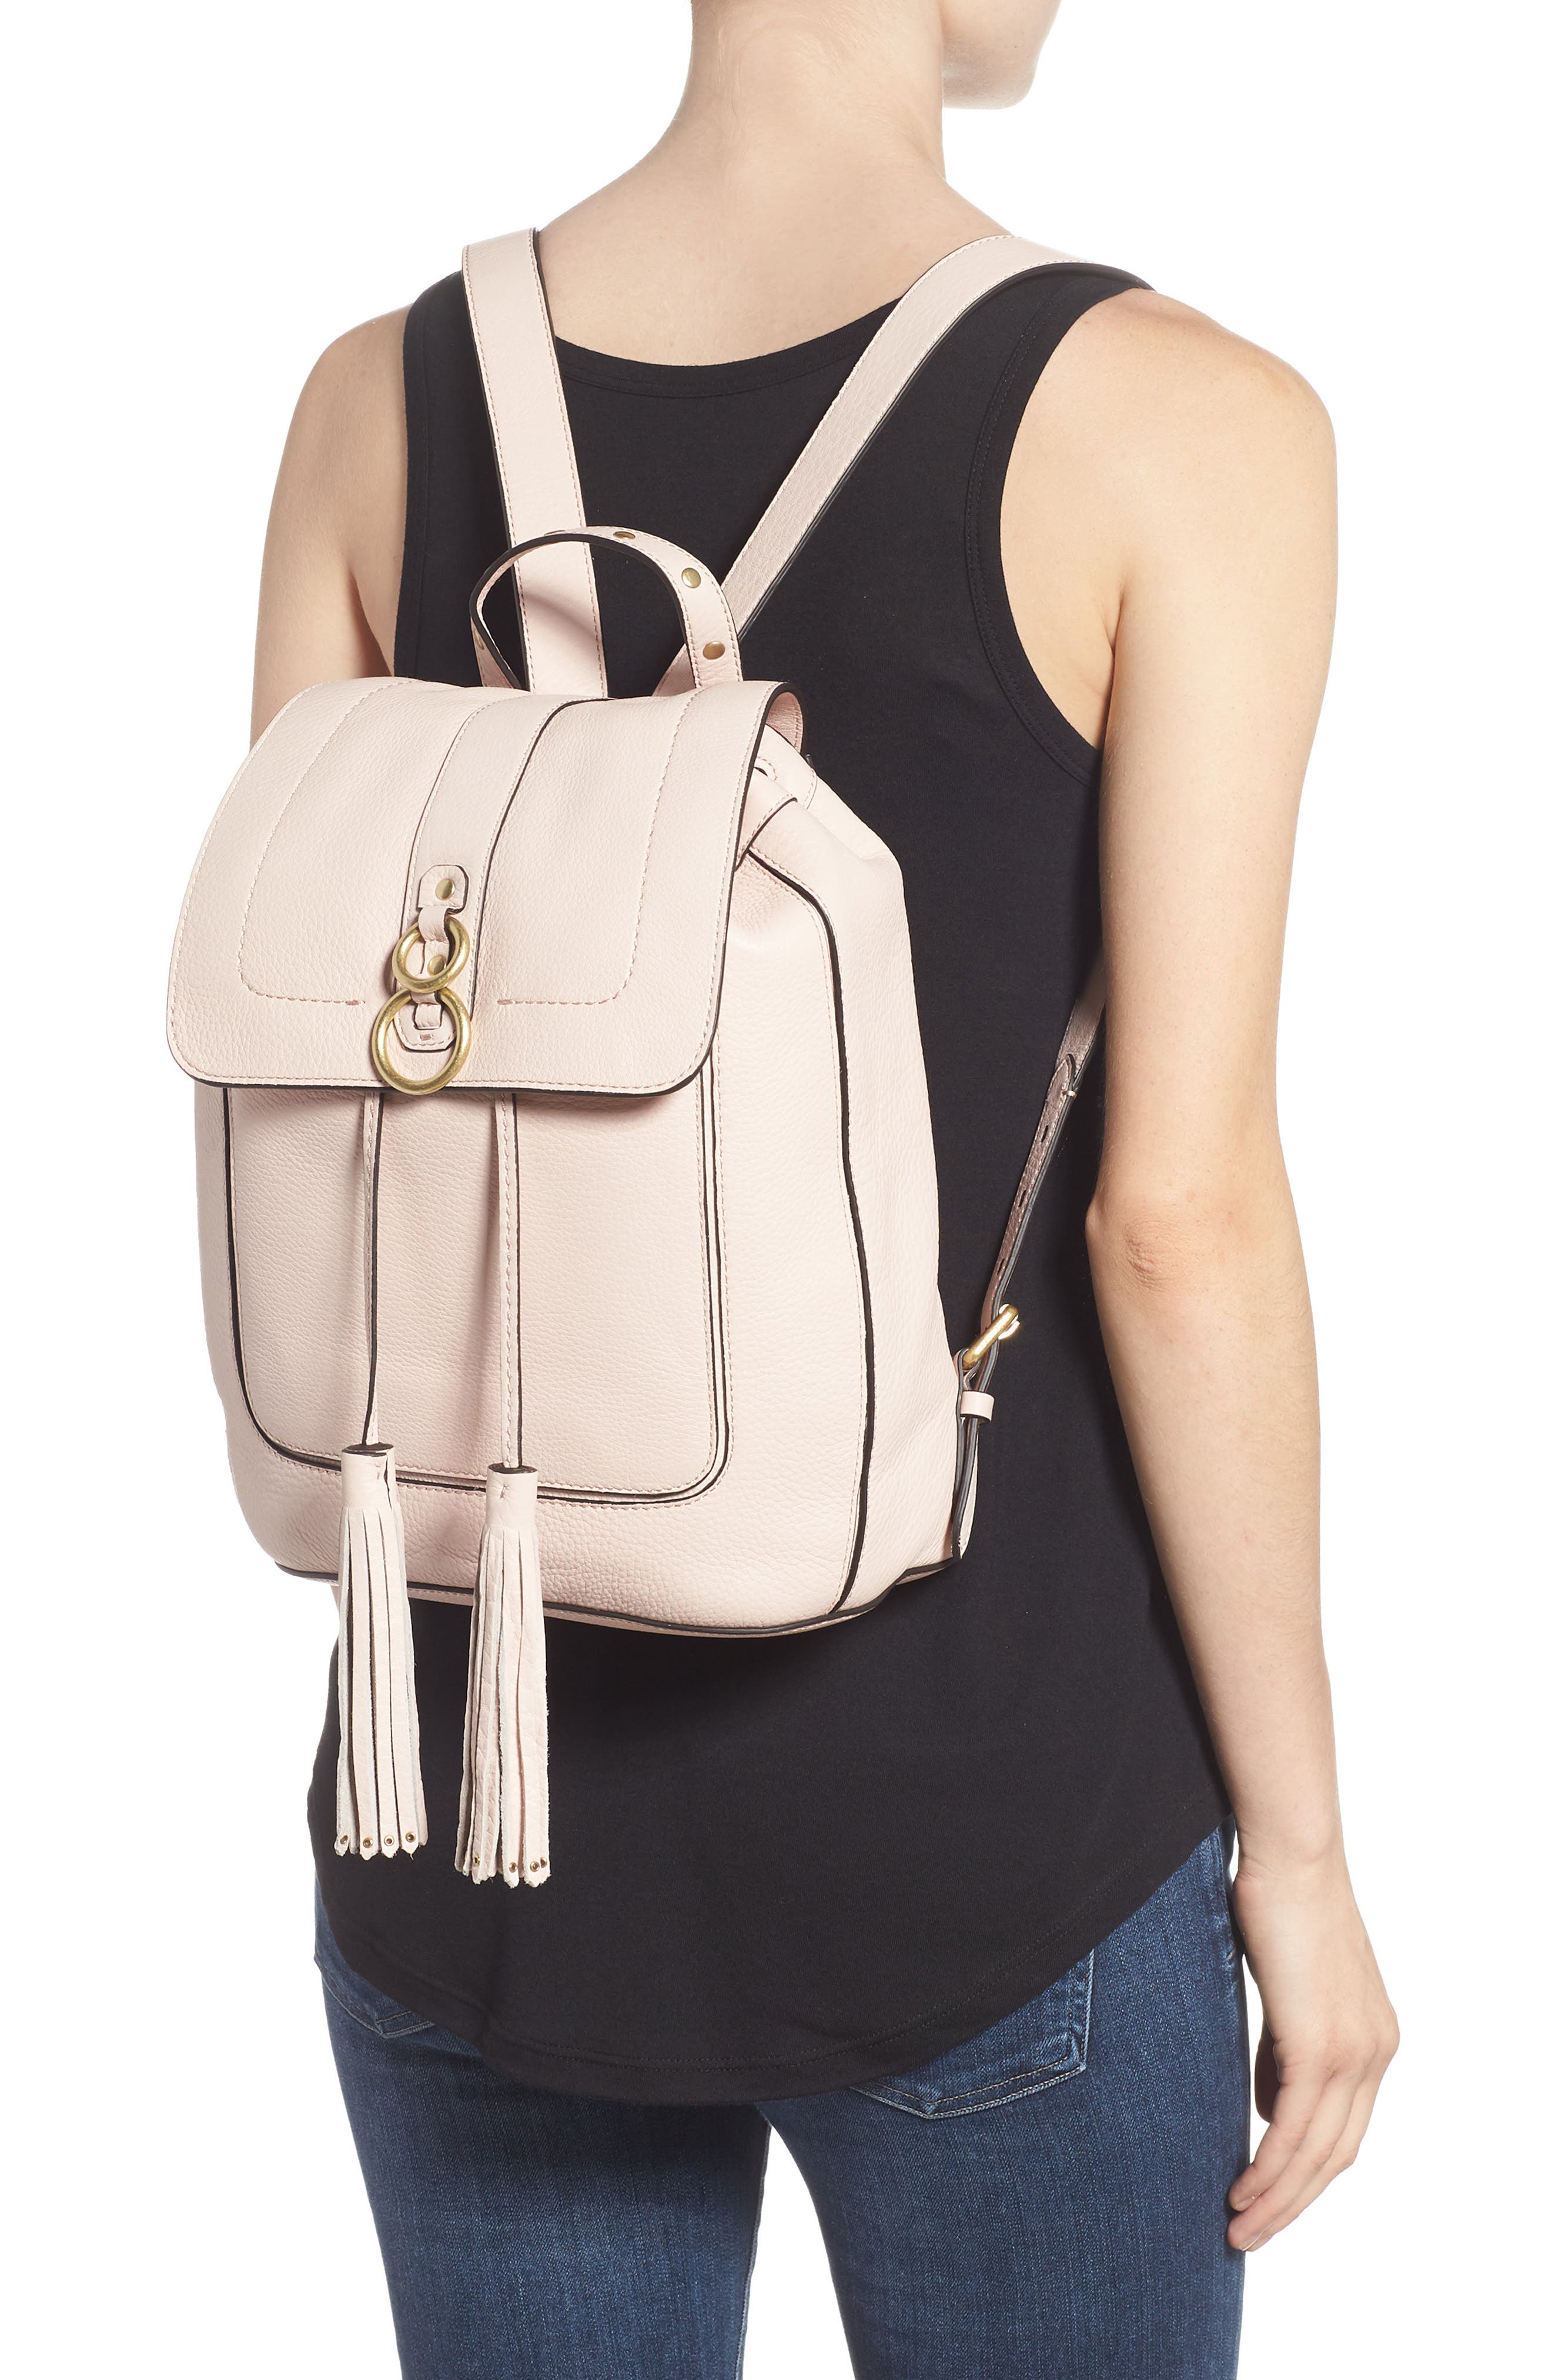 Cassidy RFID Pebbled Leather Backpack,                             Alternate thumbnail 2, color,                             Peach Blush